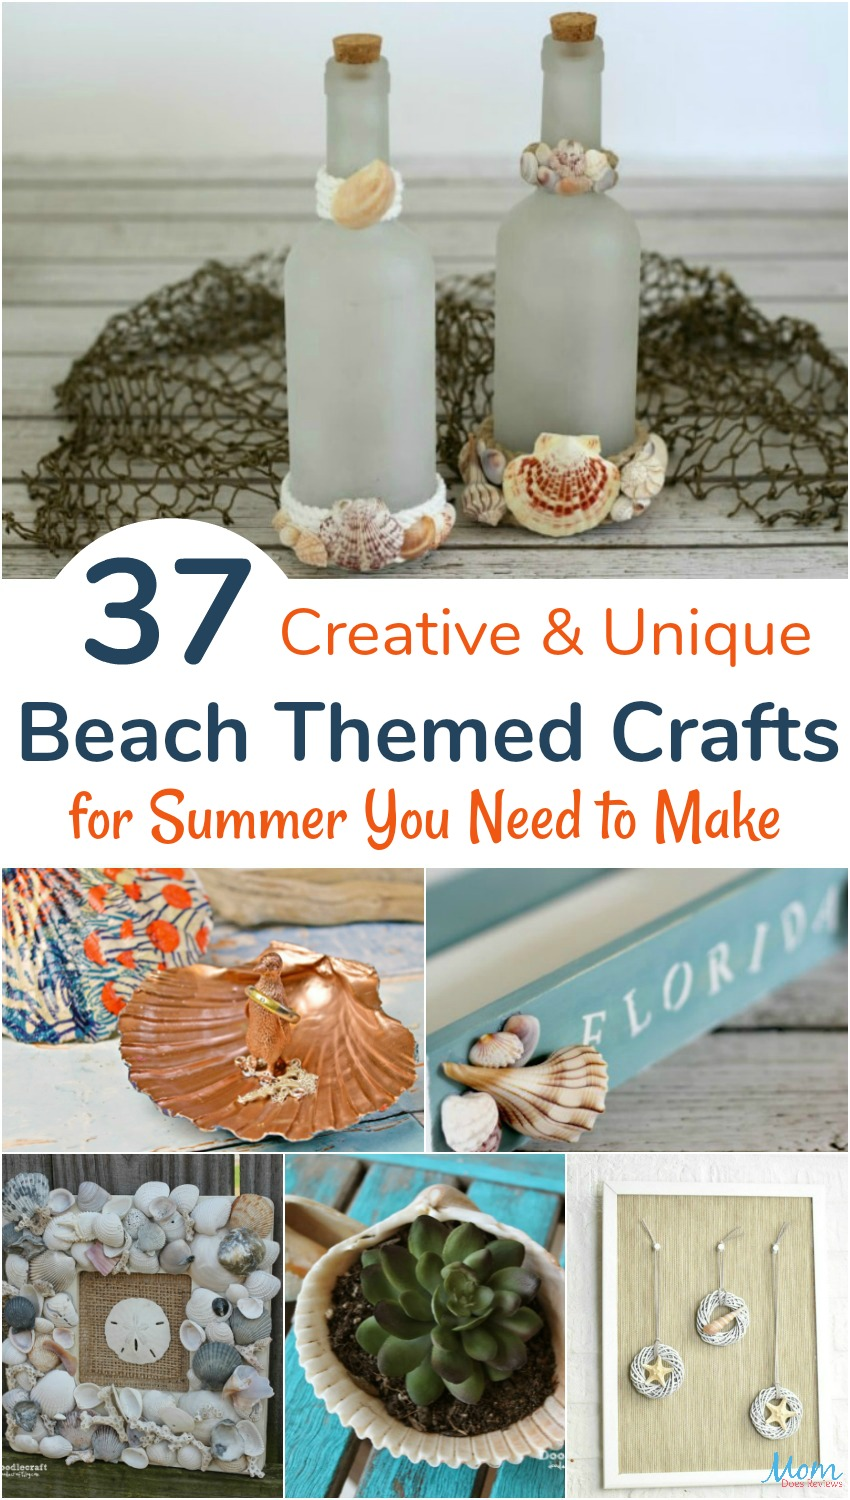 37 Creative & Unique Beach Themed Crafts for Summer You Need to Make